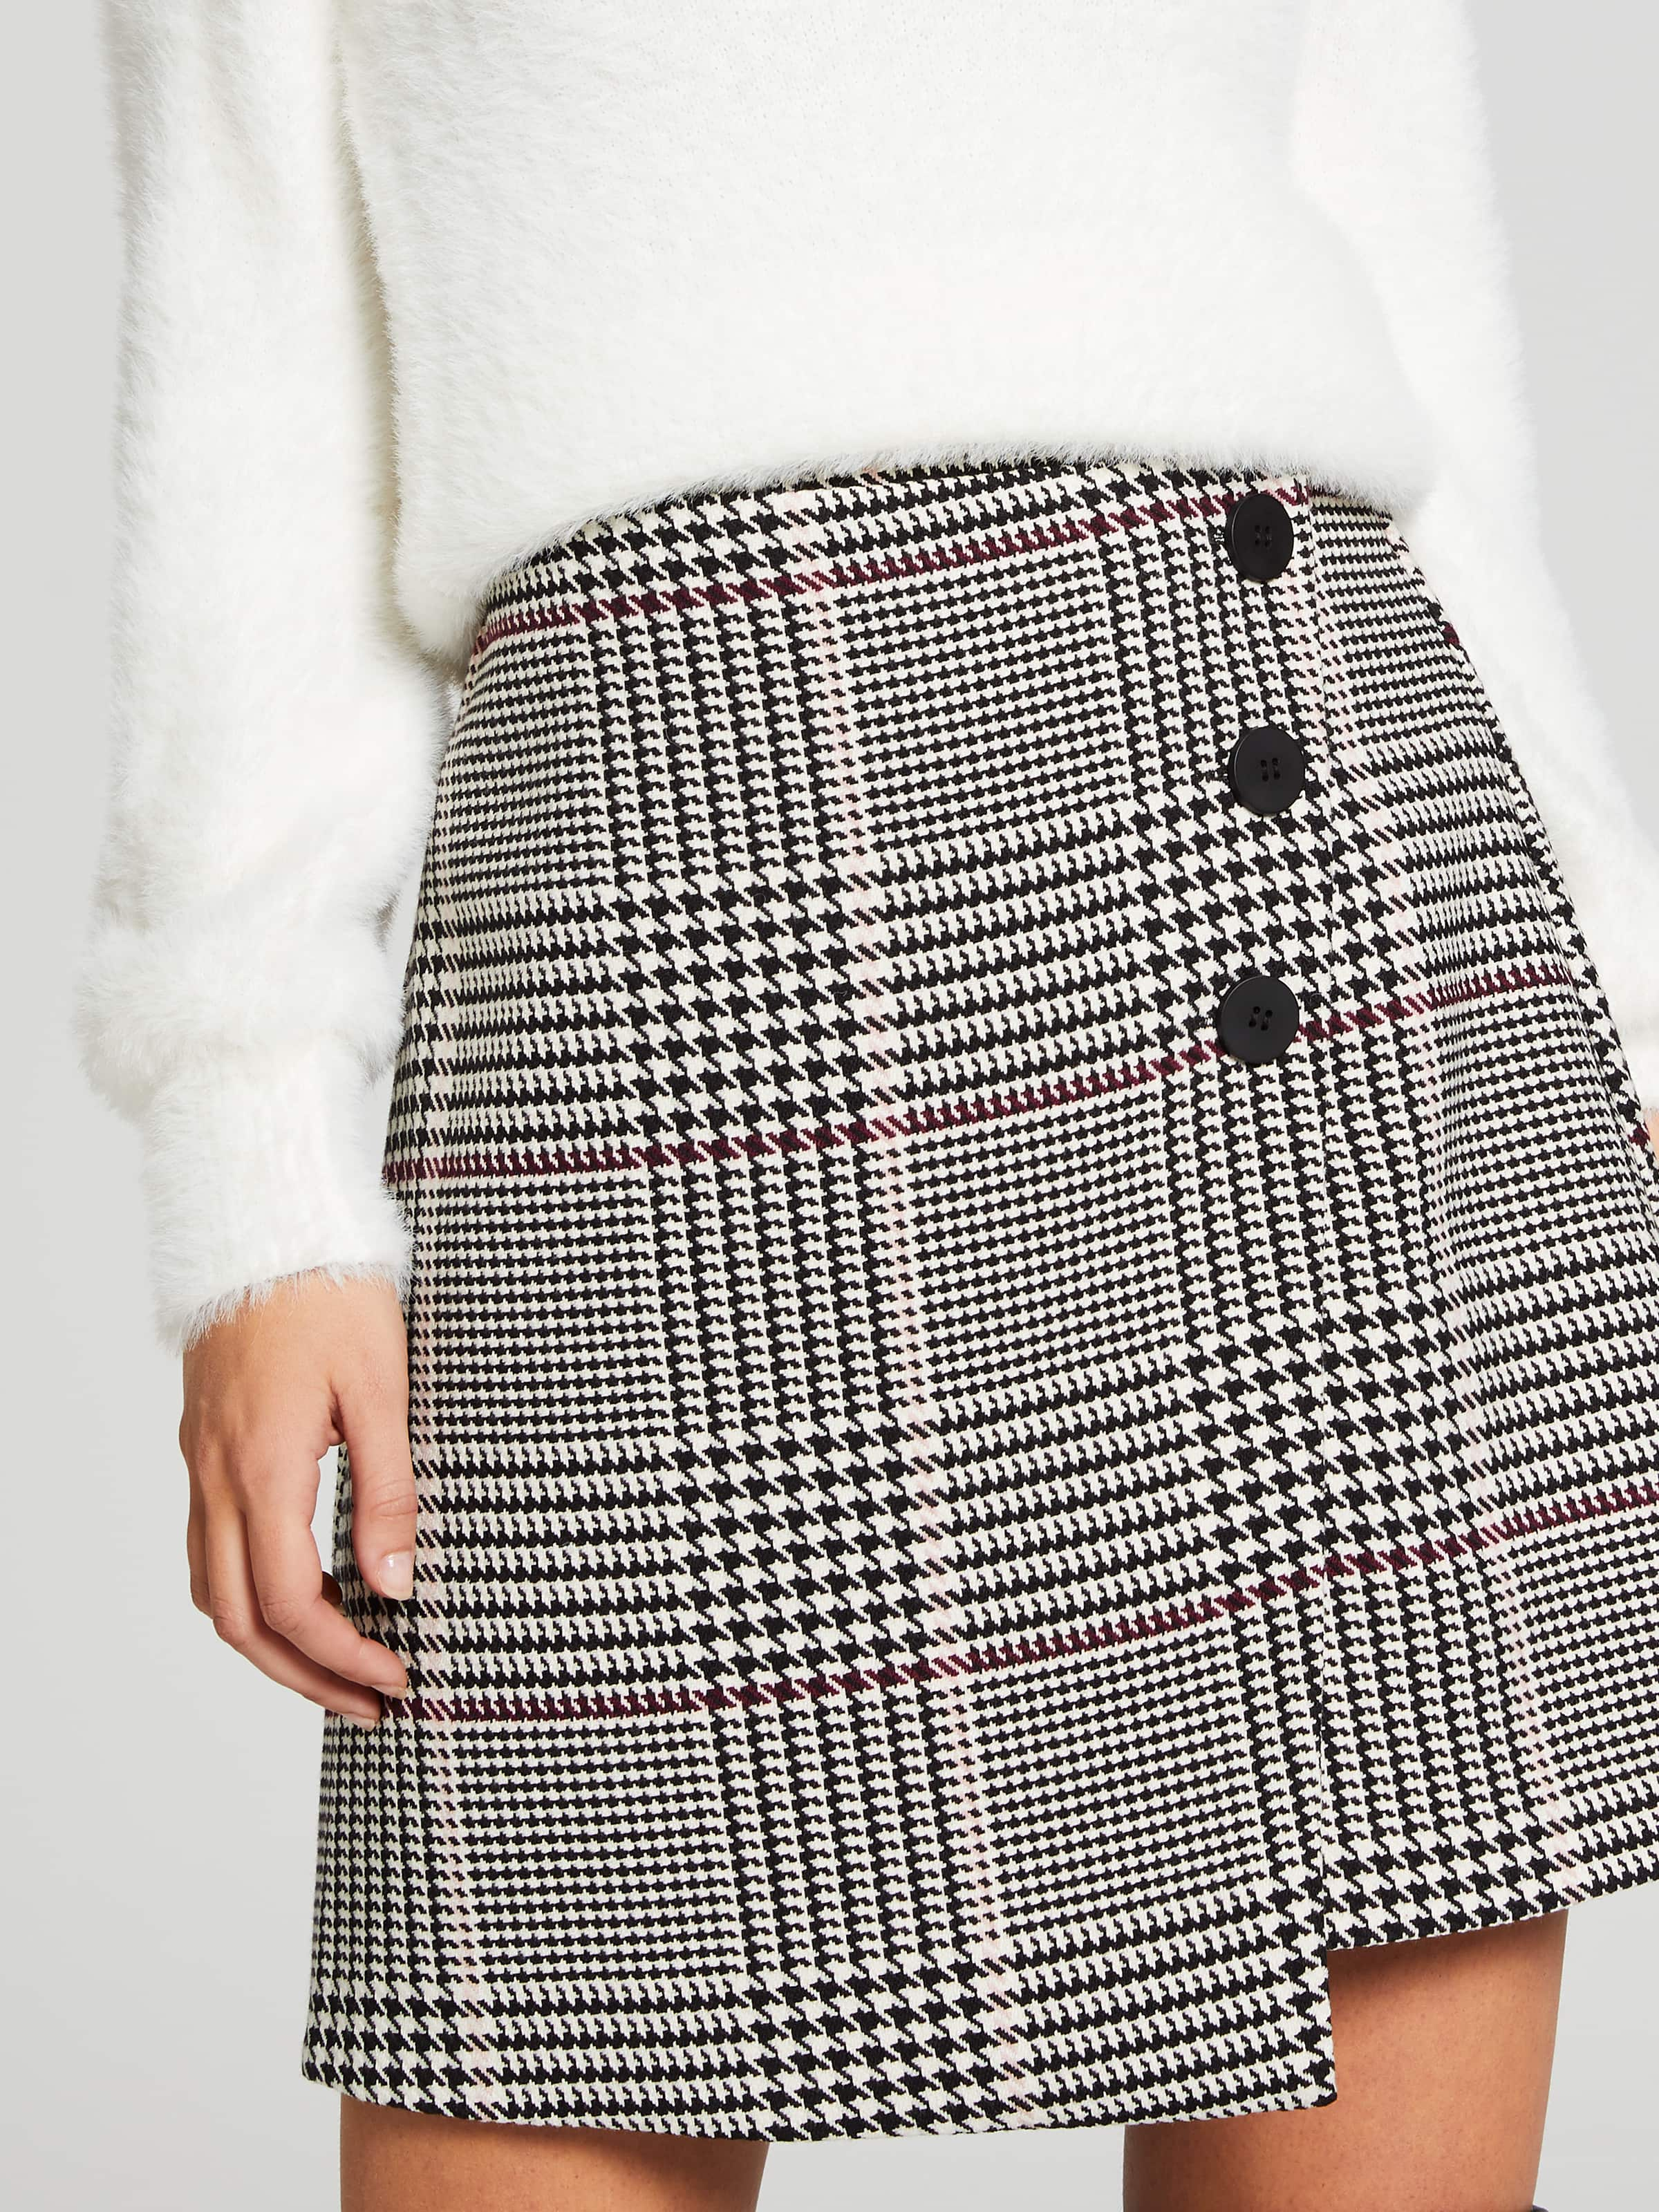 71da69481 ... Image for The Twiggy Tweed Skirt from Portmans